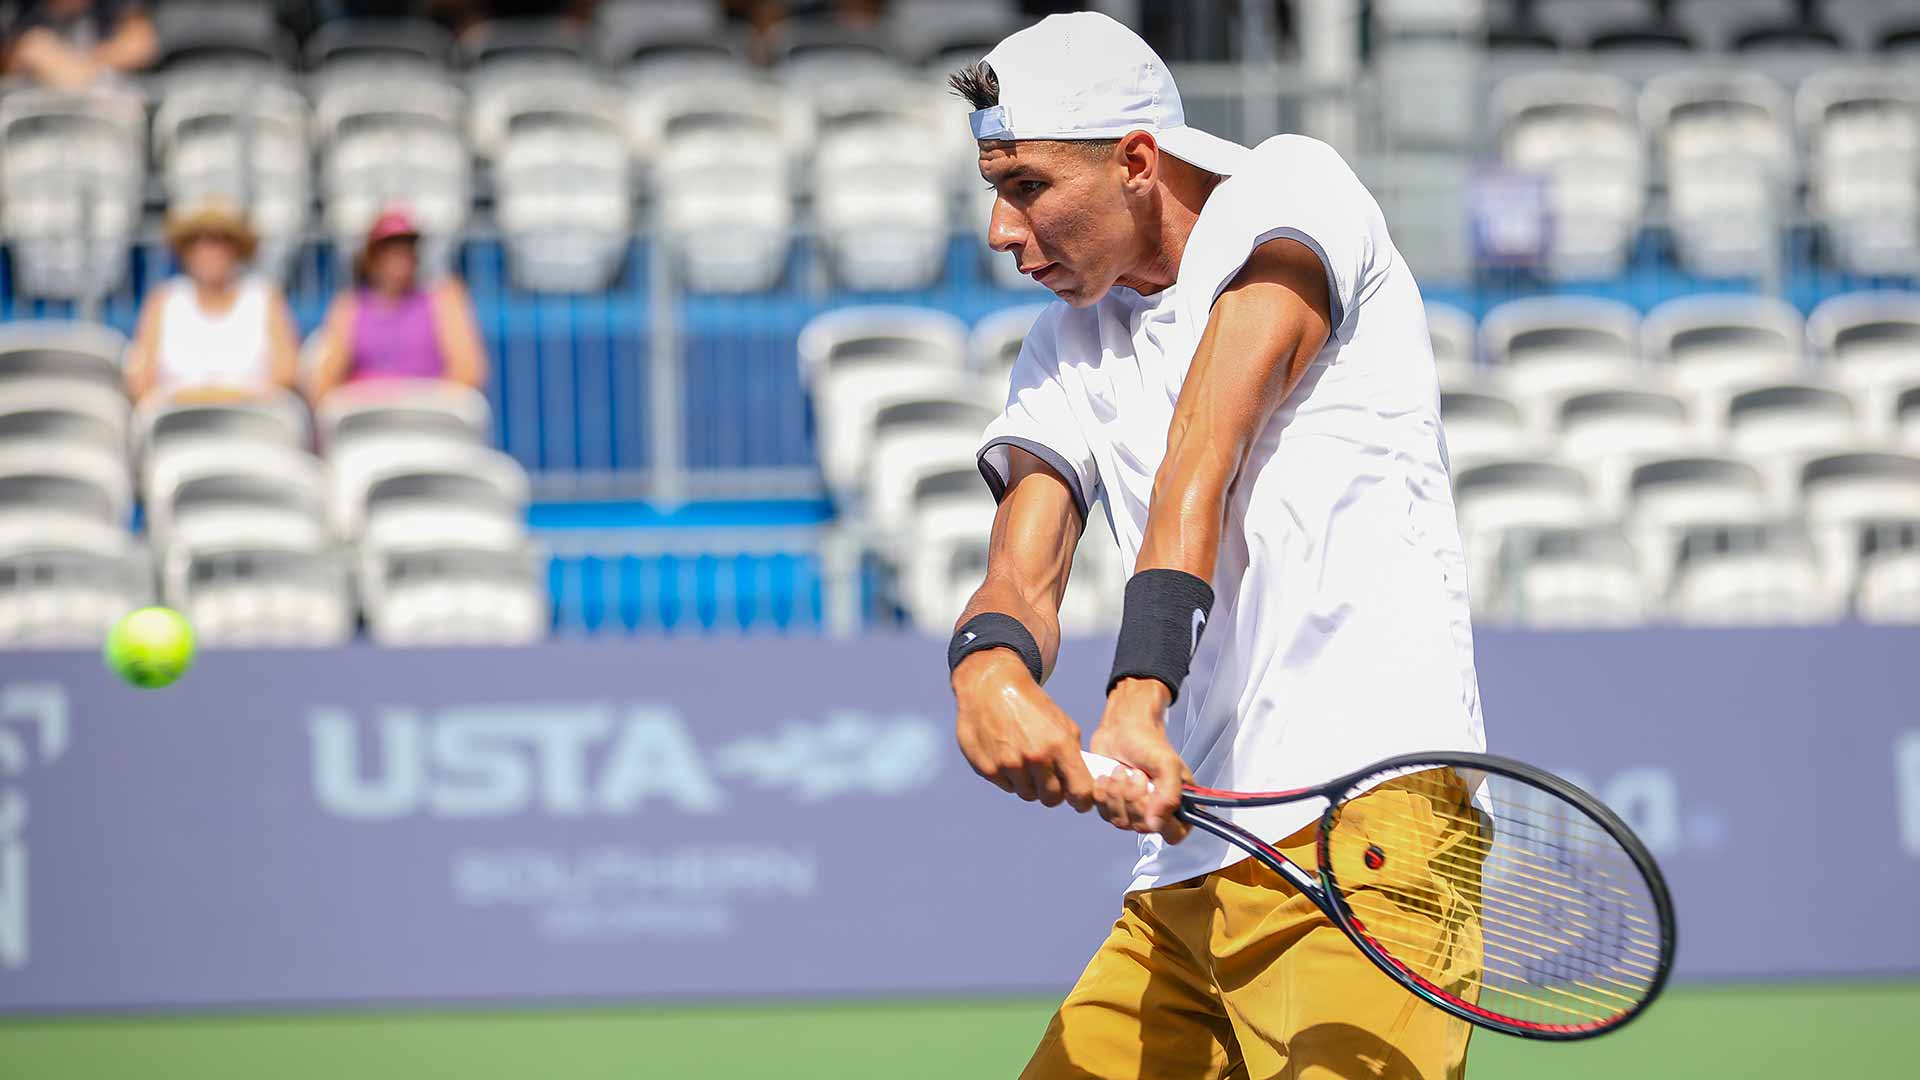 Alexei Popyrin advances on Monday at the BB&T Atlanta Open